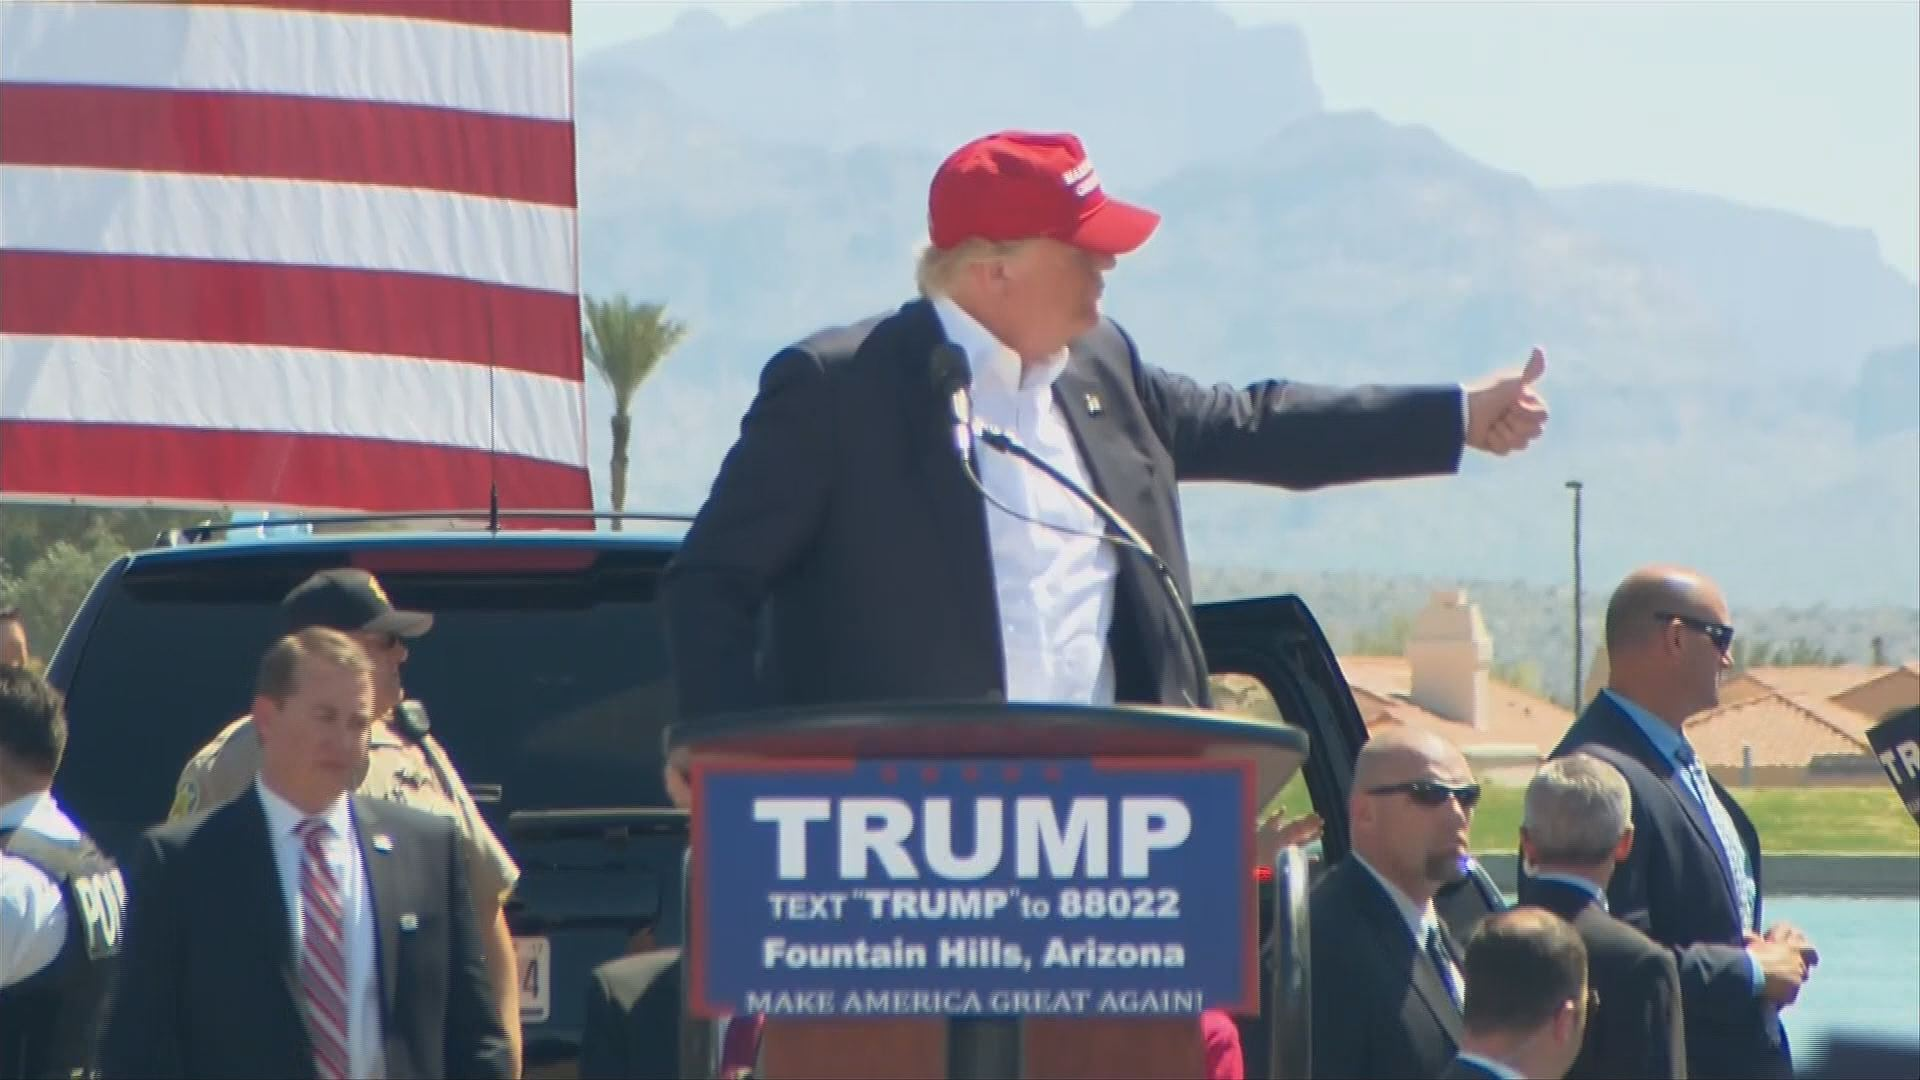 Donald Trump says campaign manager who grabbed protester showed 'spirit'